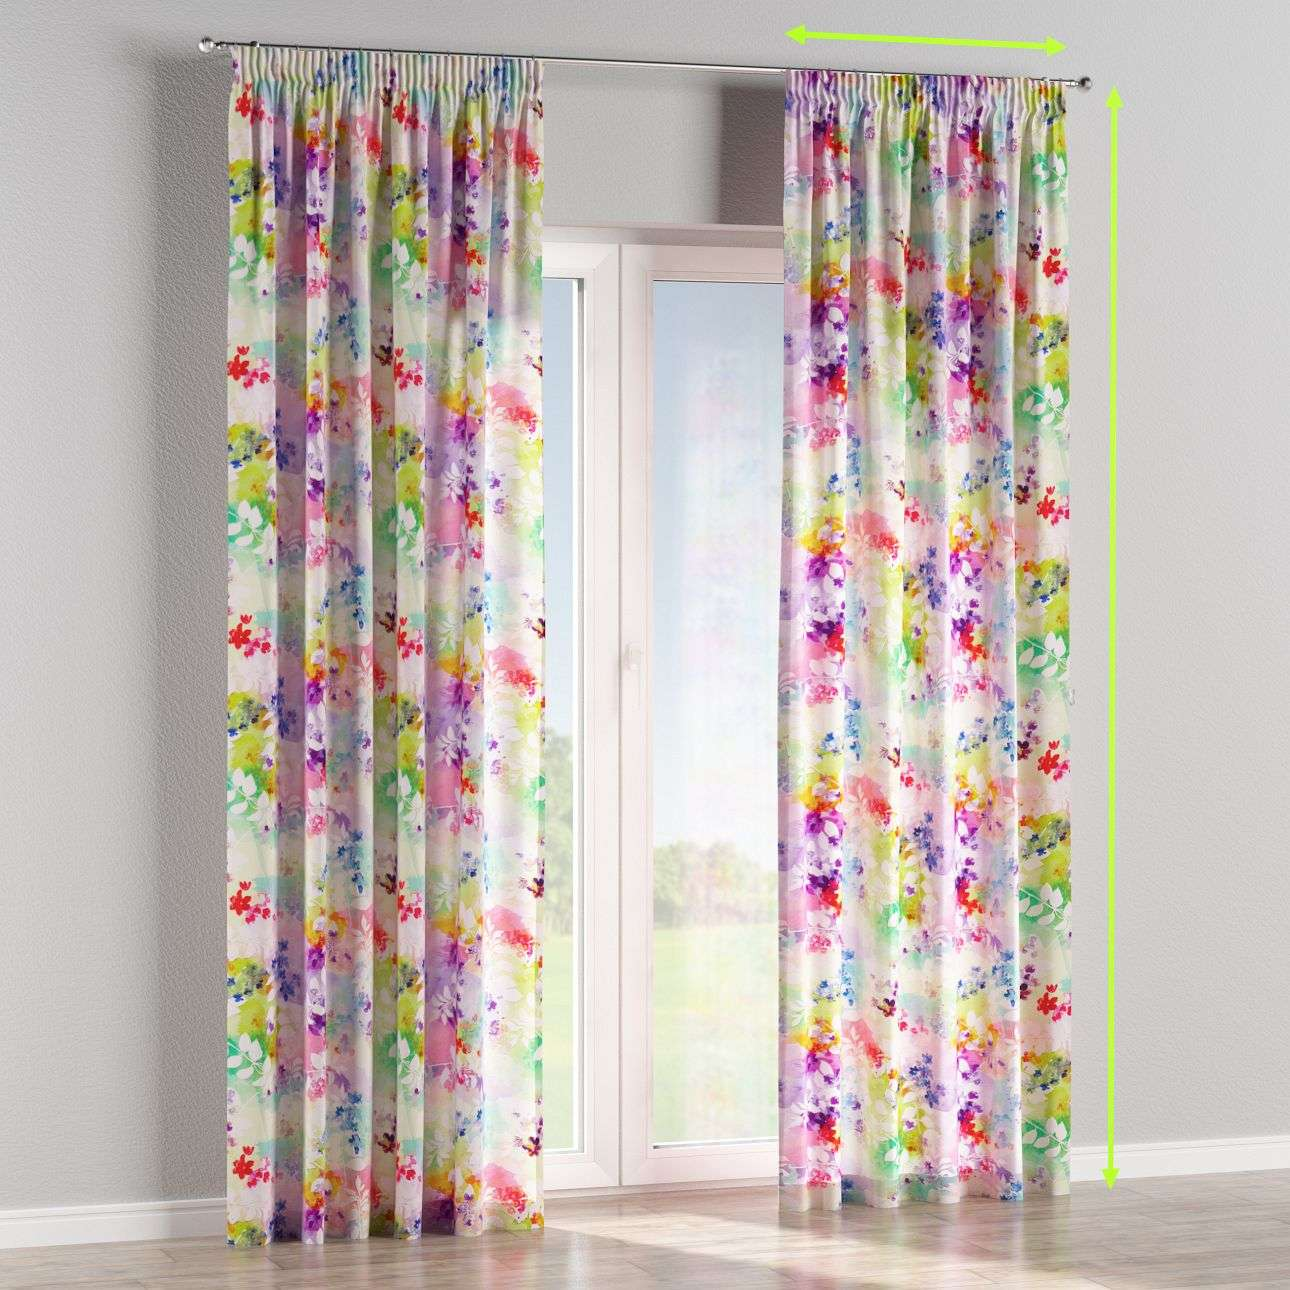 Pencil pleat curtains in collection Monet, fabric: 140-07